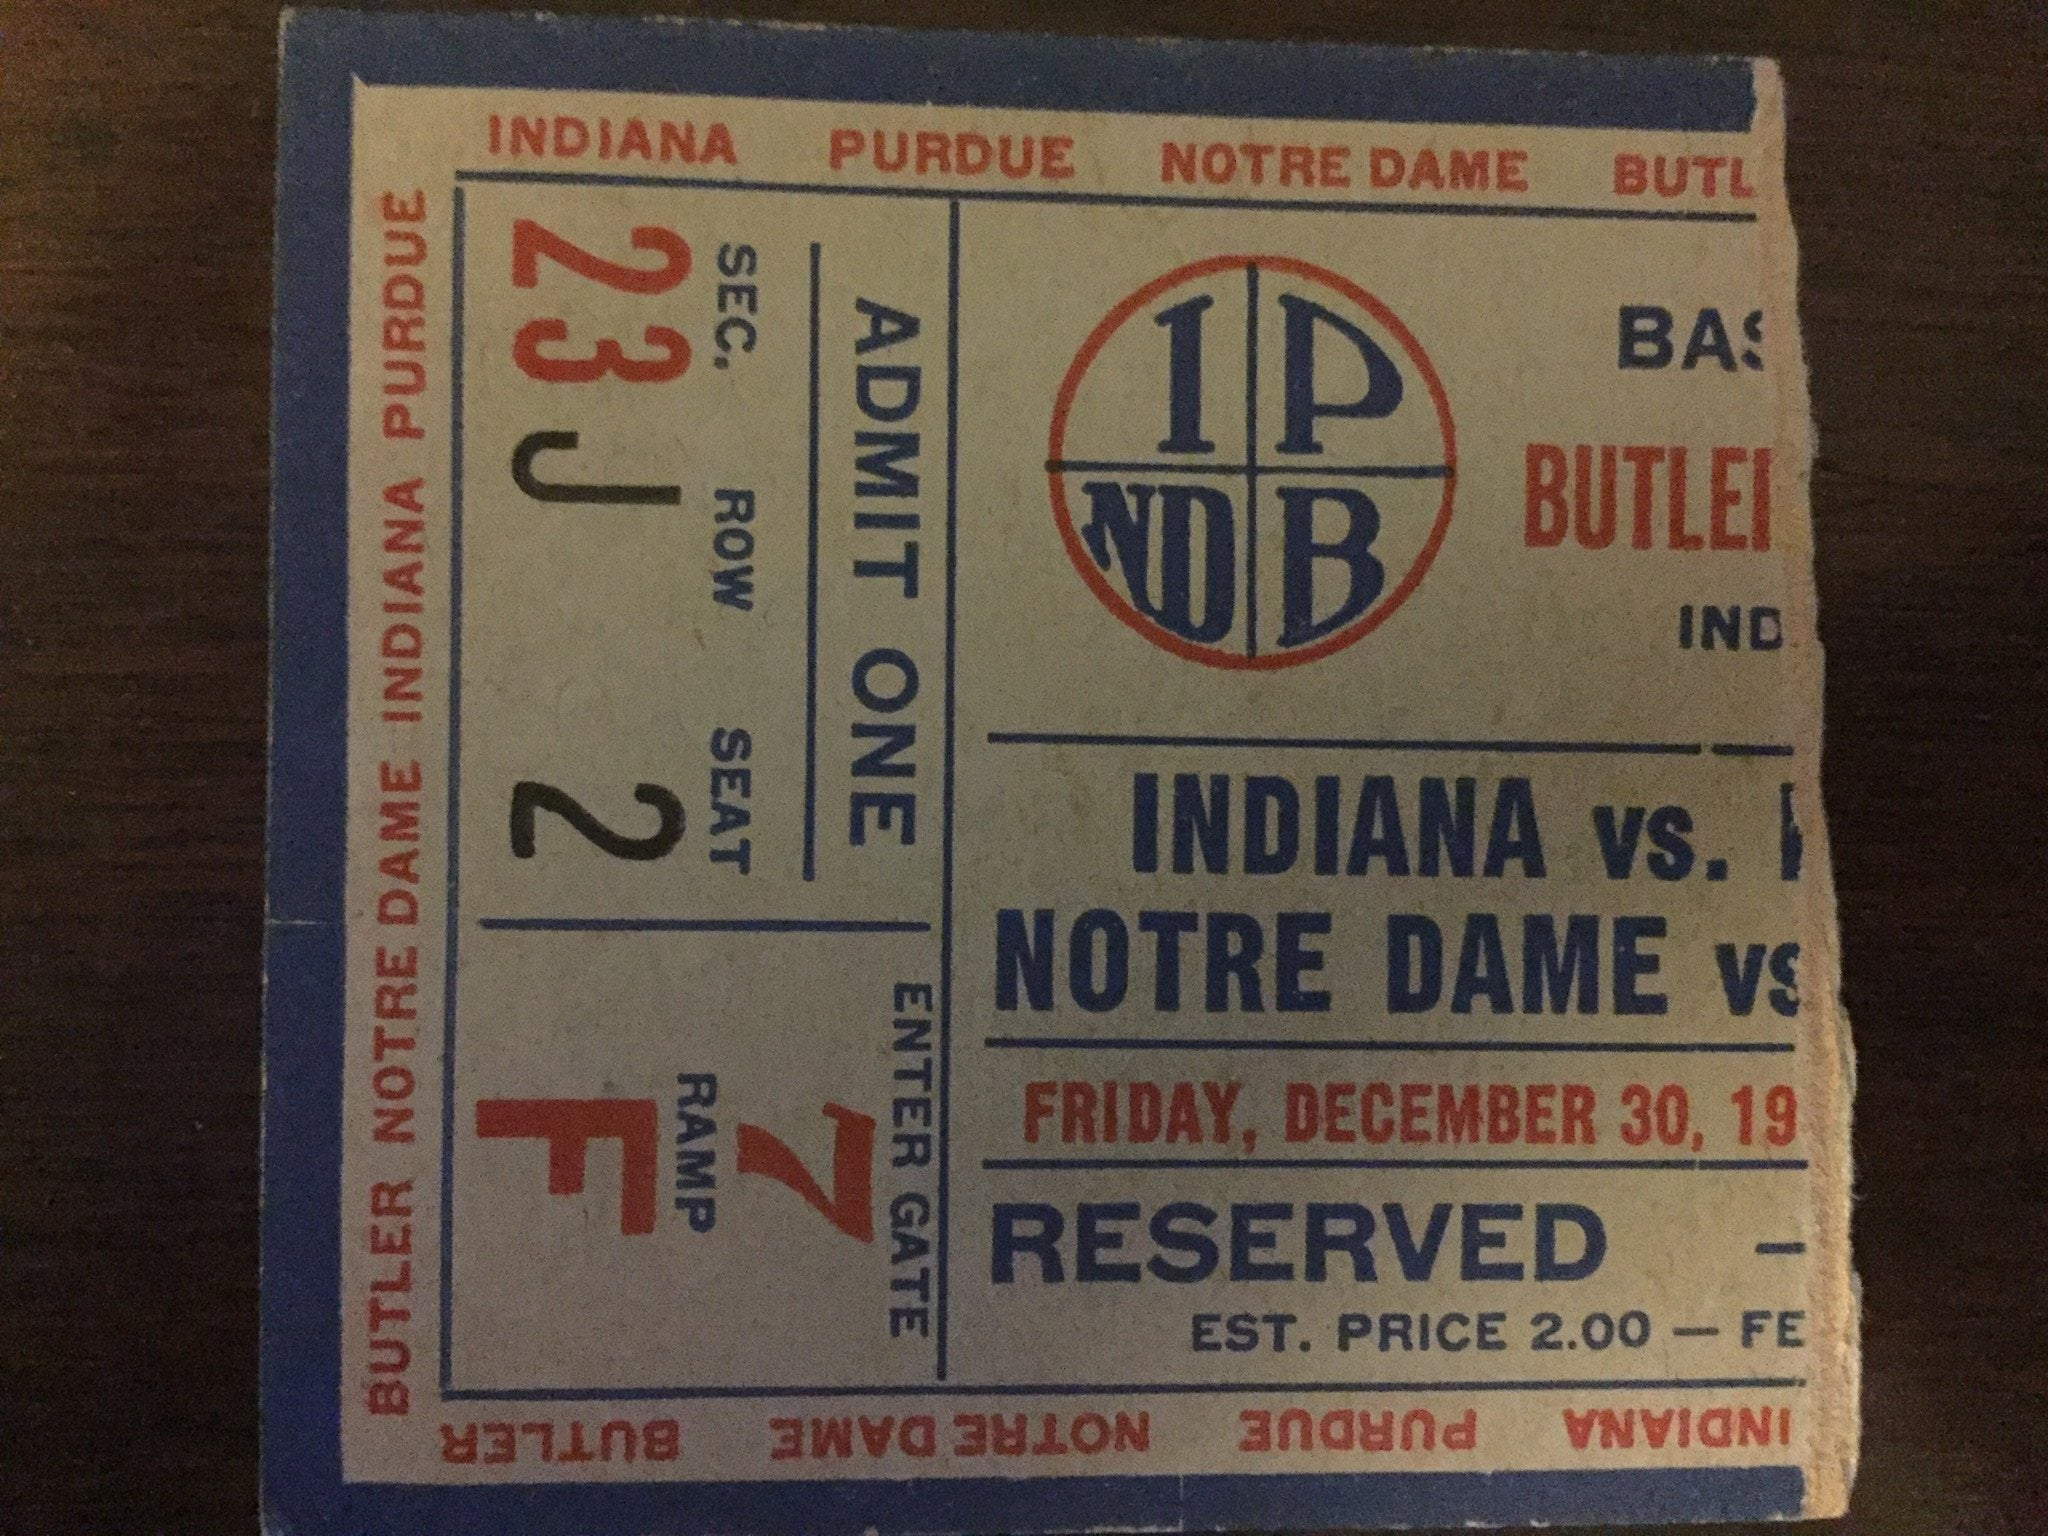 ticket stub image